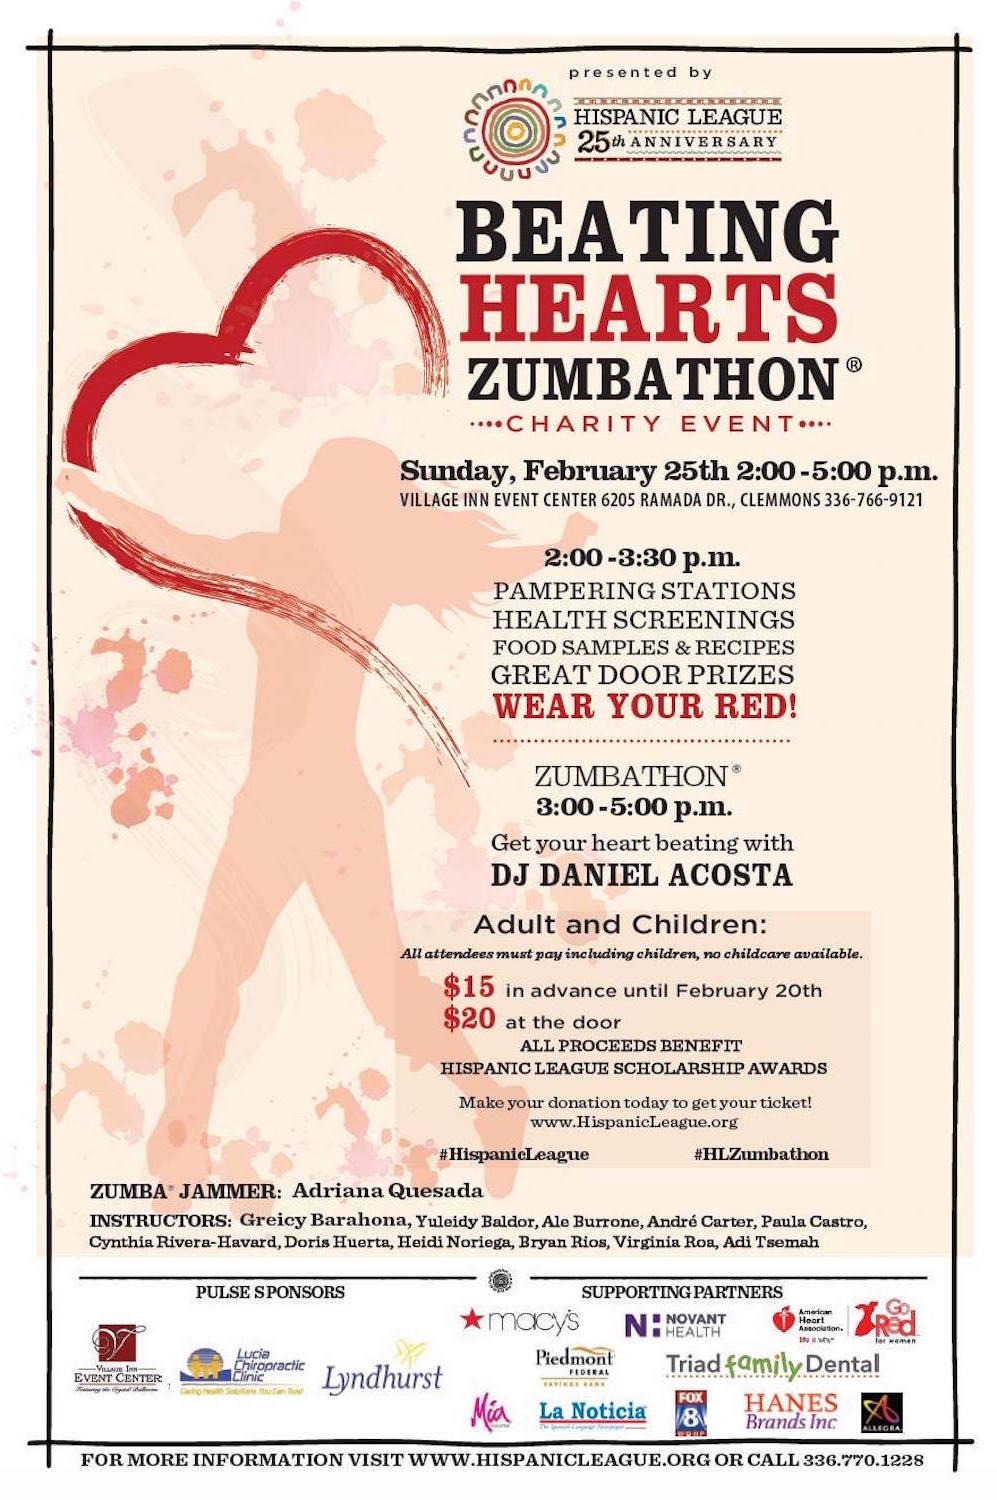 2018 Hispanic League Beating Hearts Zumbathon® Charity Event